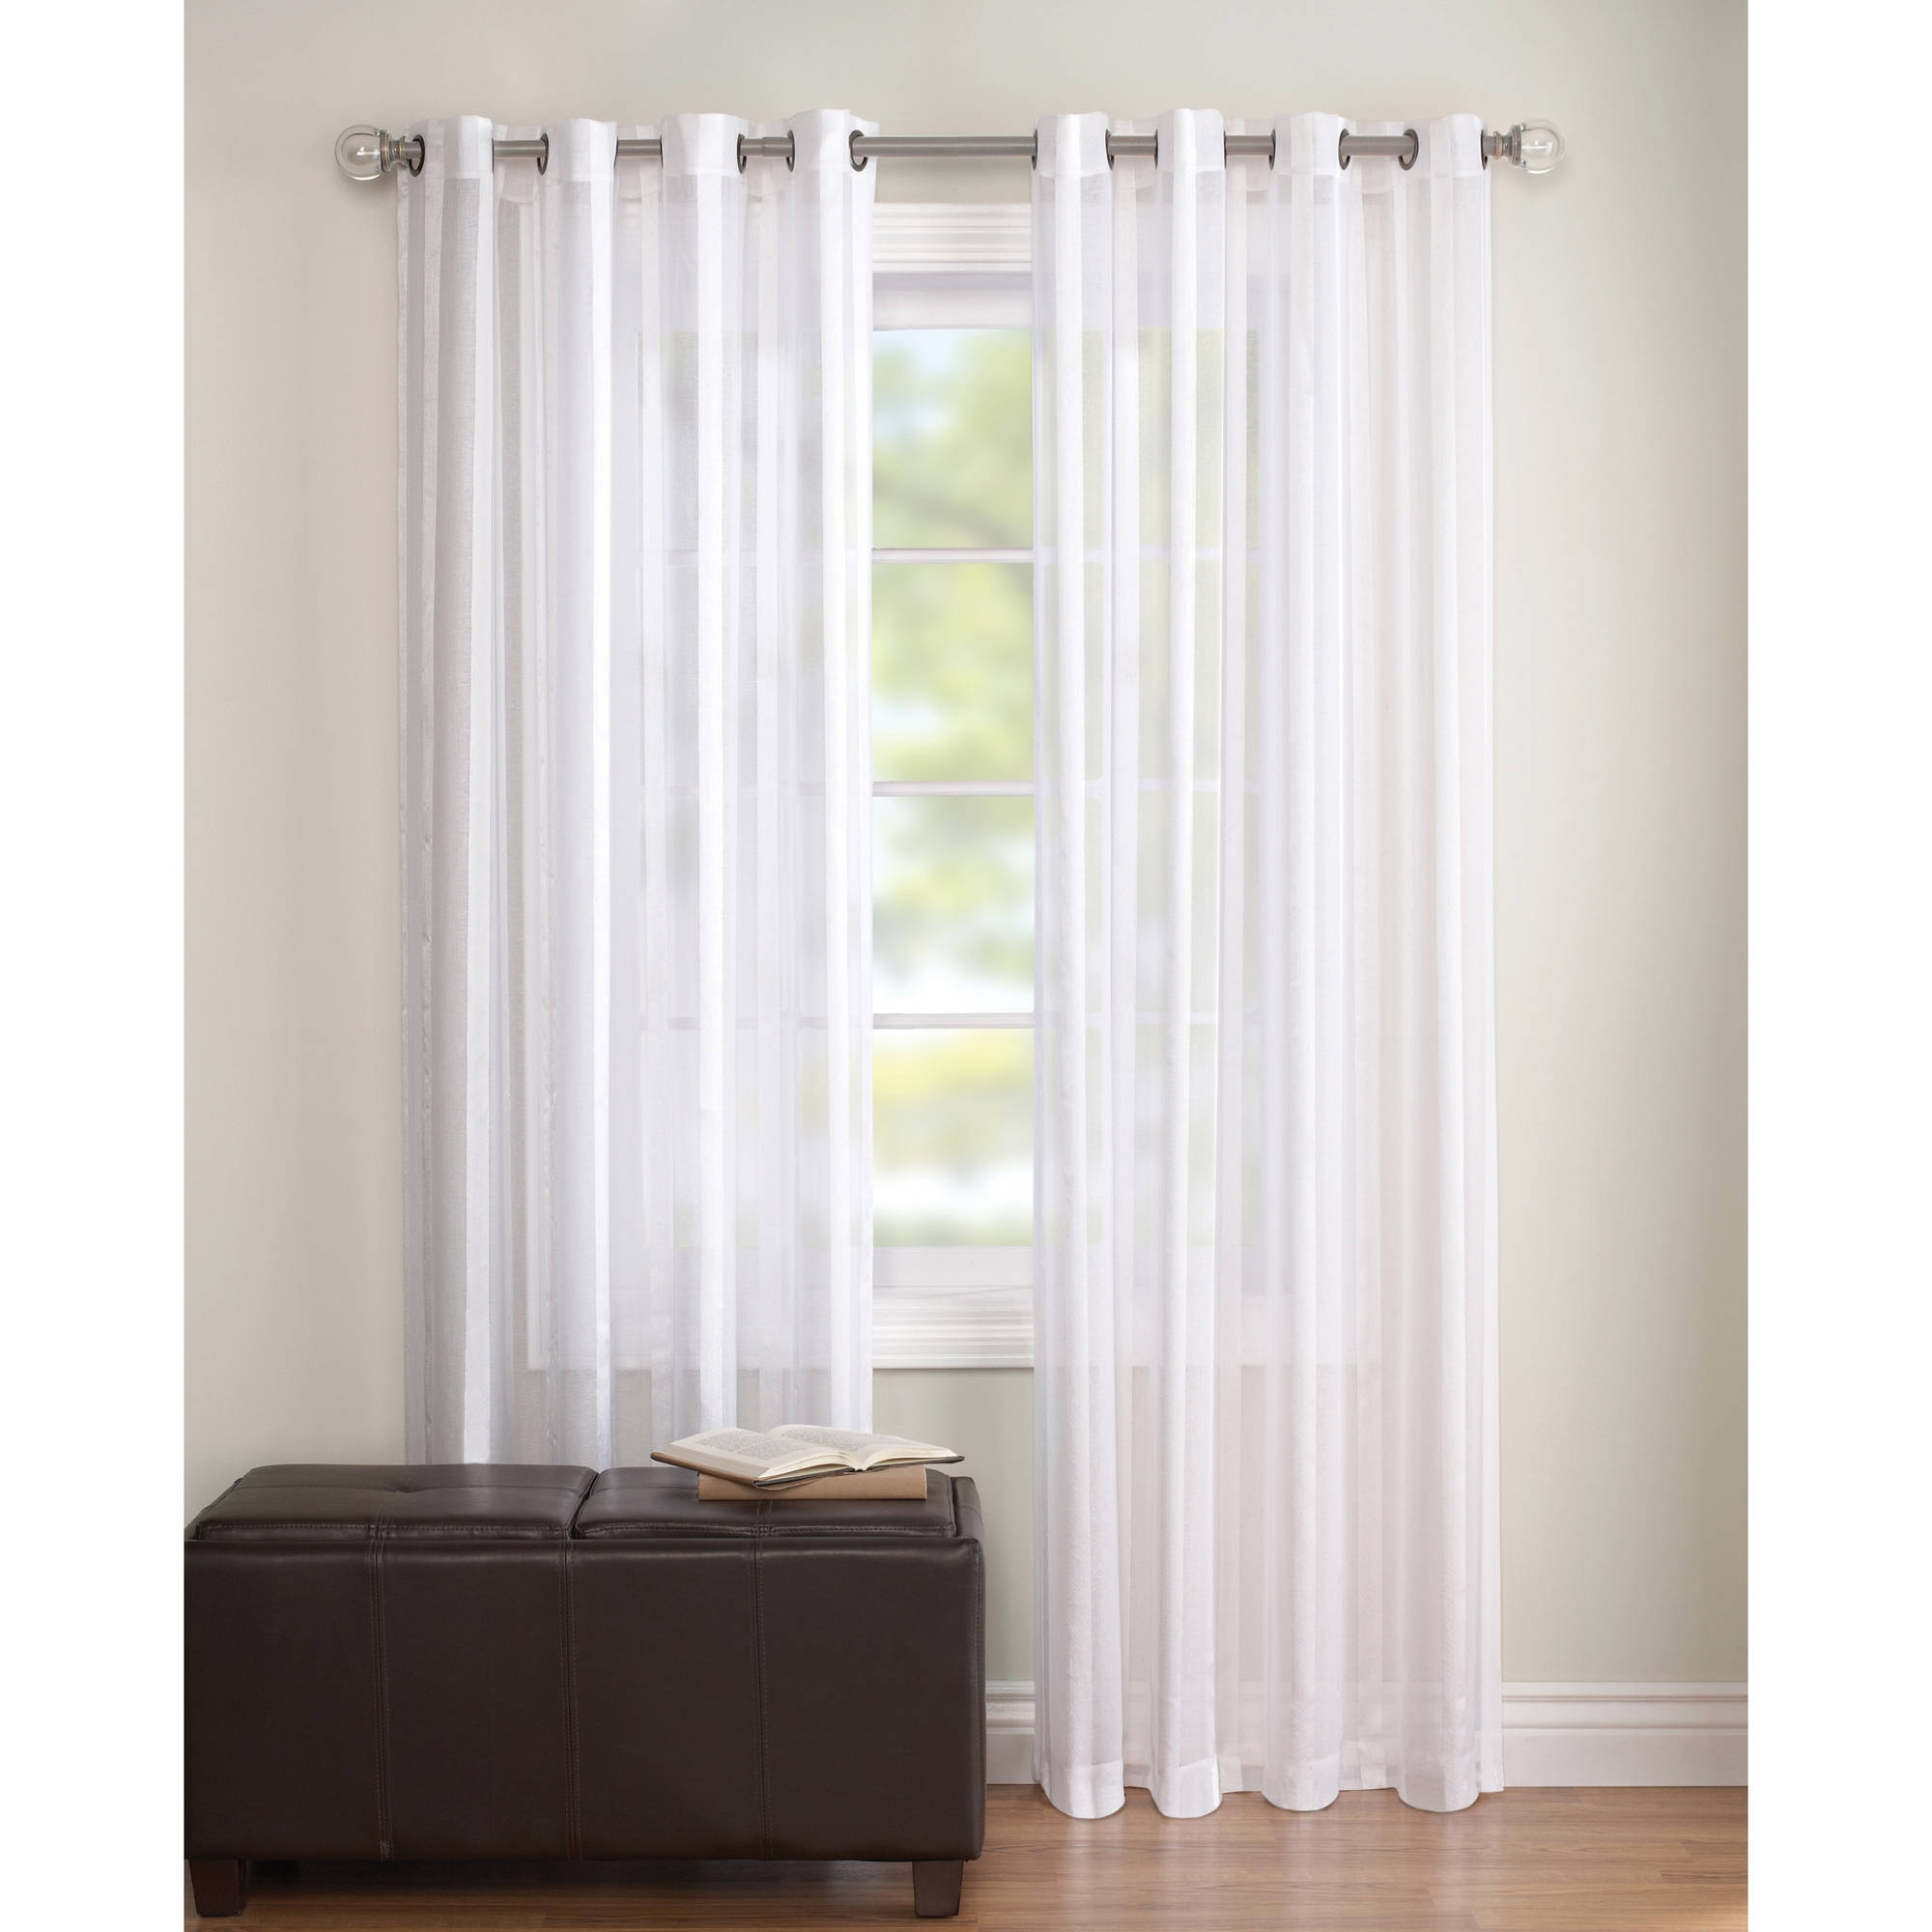 Salient Better Homes Silver G Sheer Curtains Gardens Embroidered Sheer Curtain Panel Walmart Inside Sheer Cotton Curtains Sheer Cotton Curtains Curtain Ideas Sheer Curtains houzz-02 White Sheer Curtains